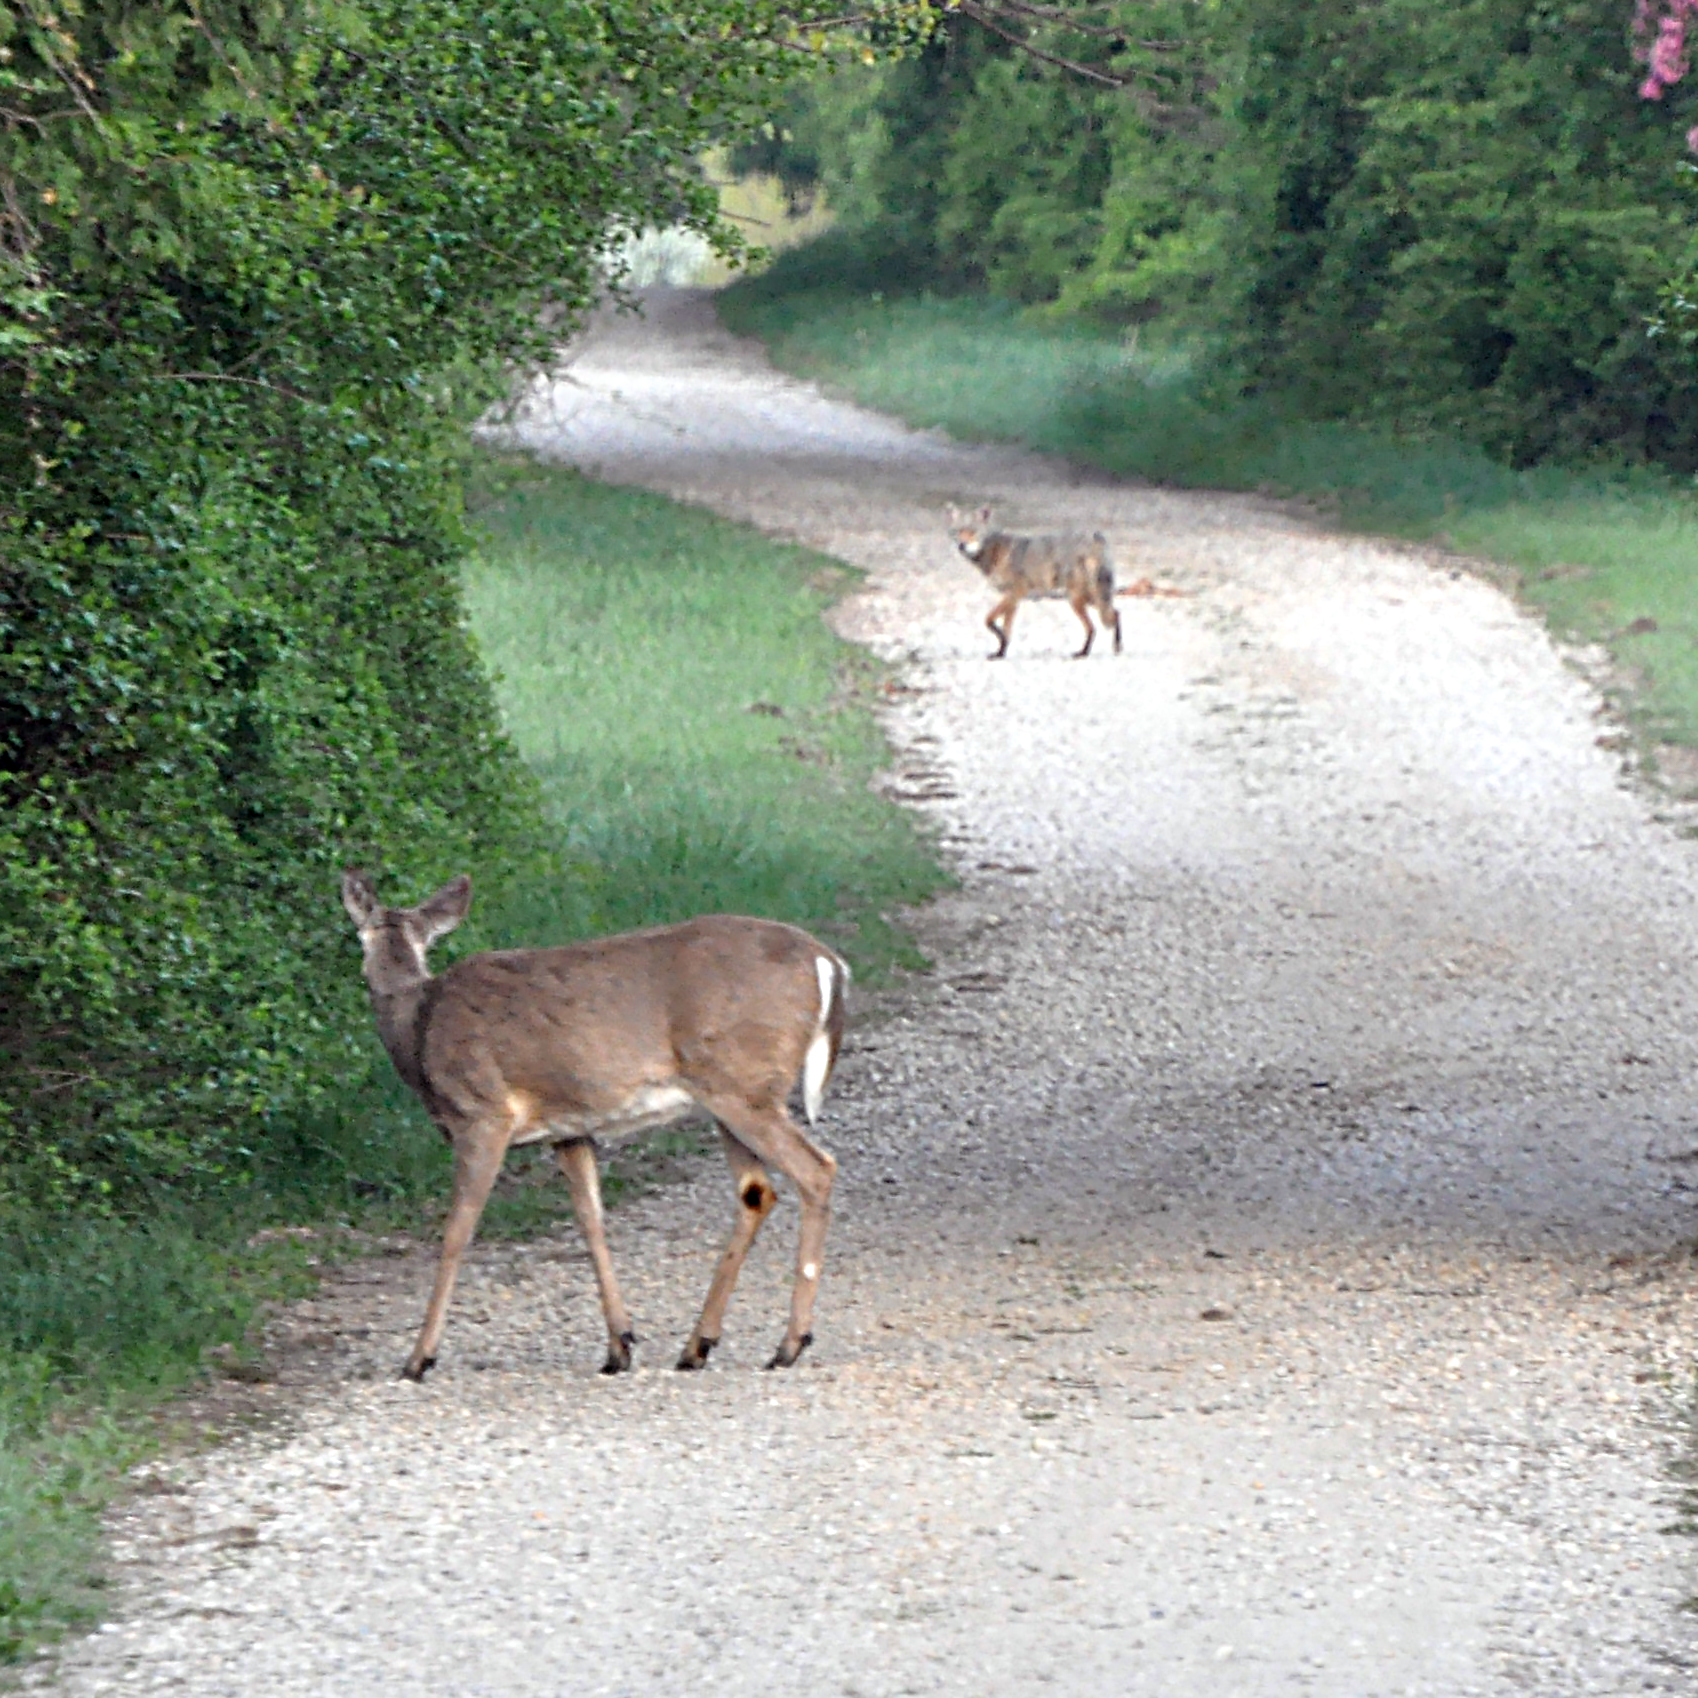 Photo of a coyote and deer looking at each other